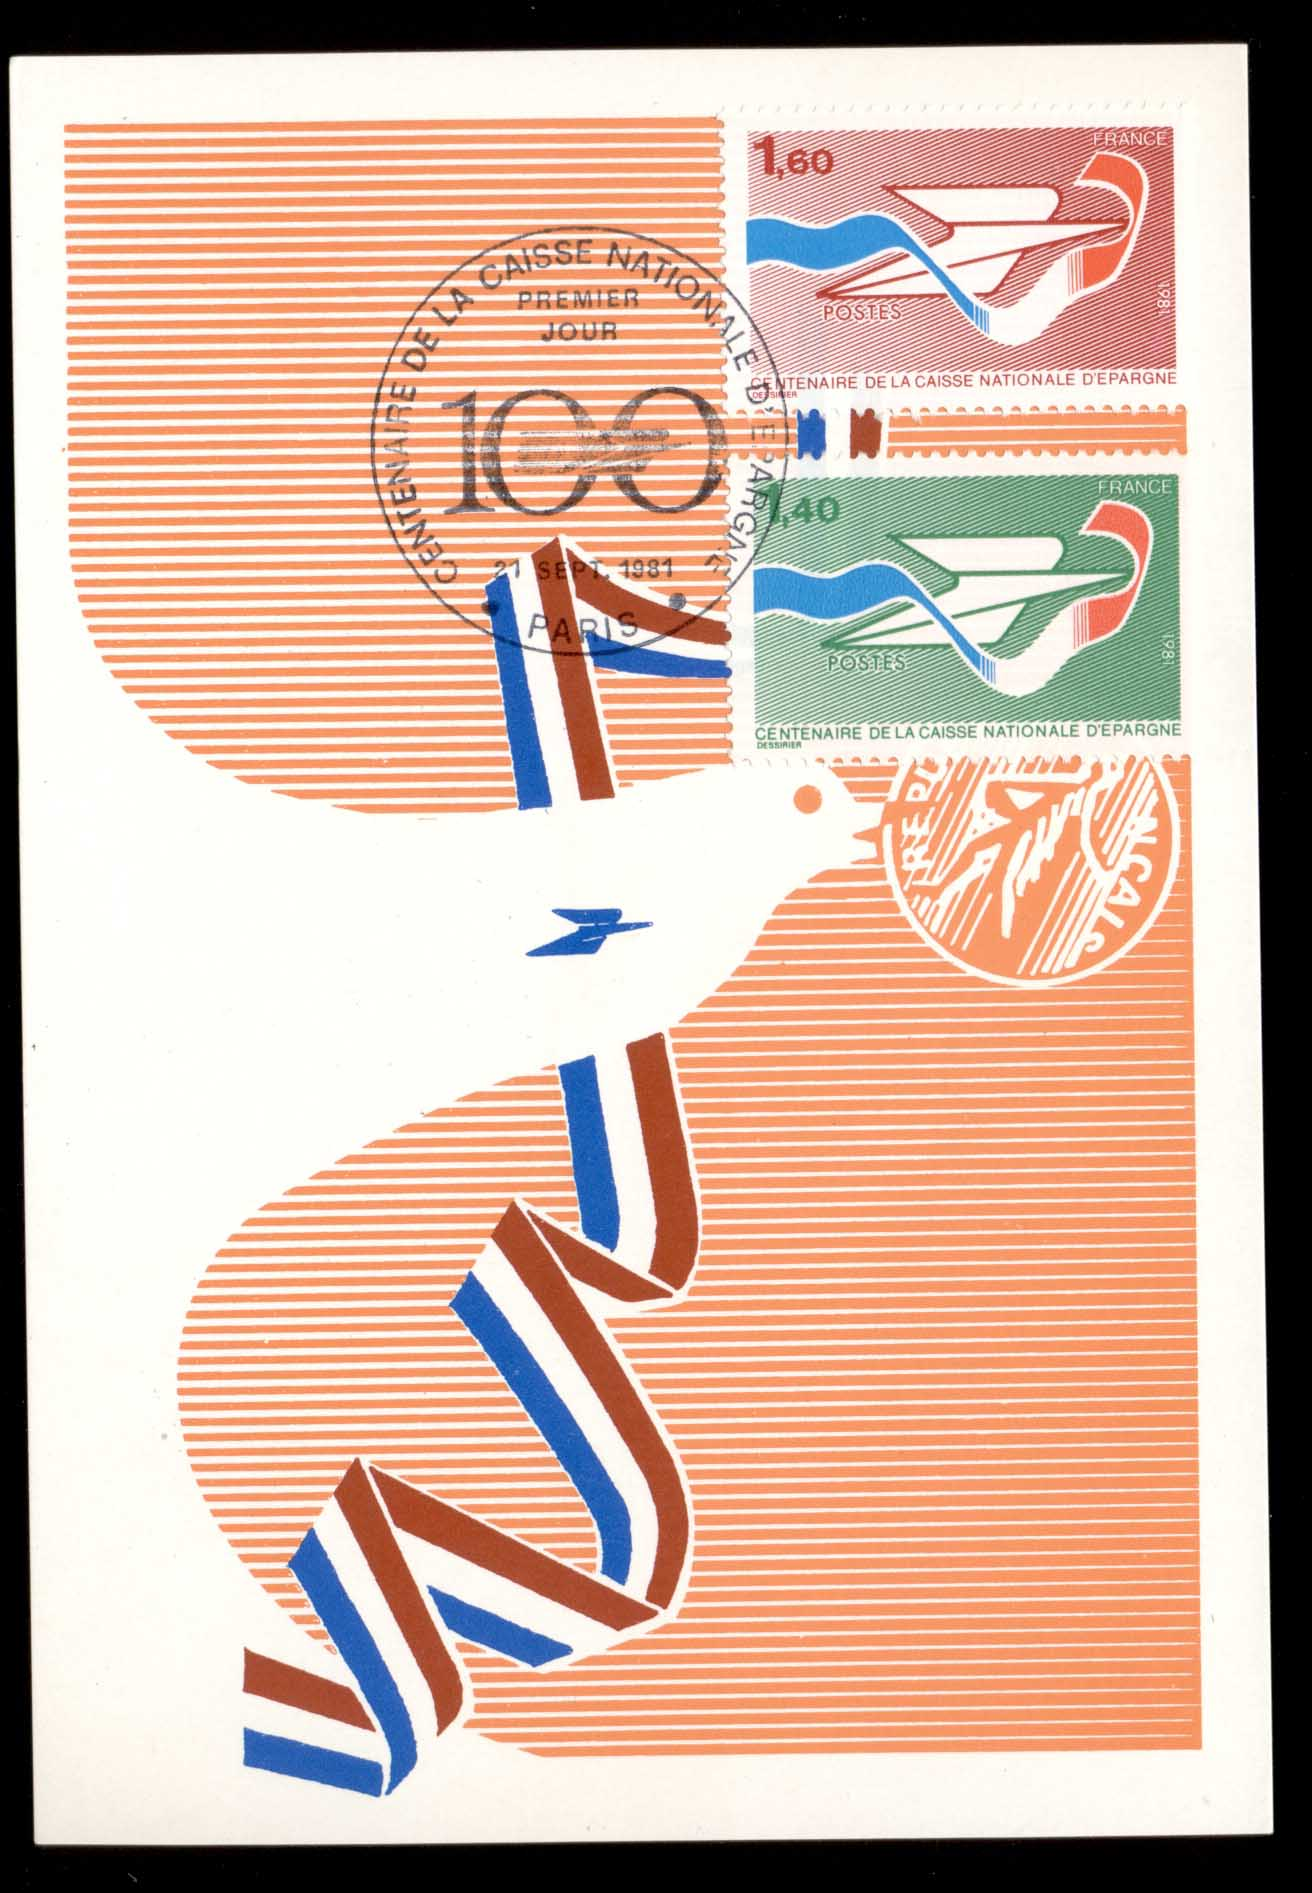 France 1981 National Savings Bank Centenary Maxicard